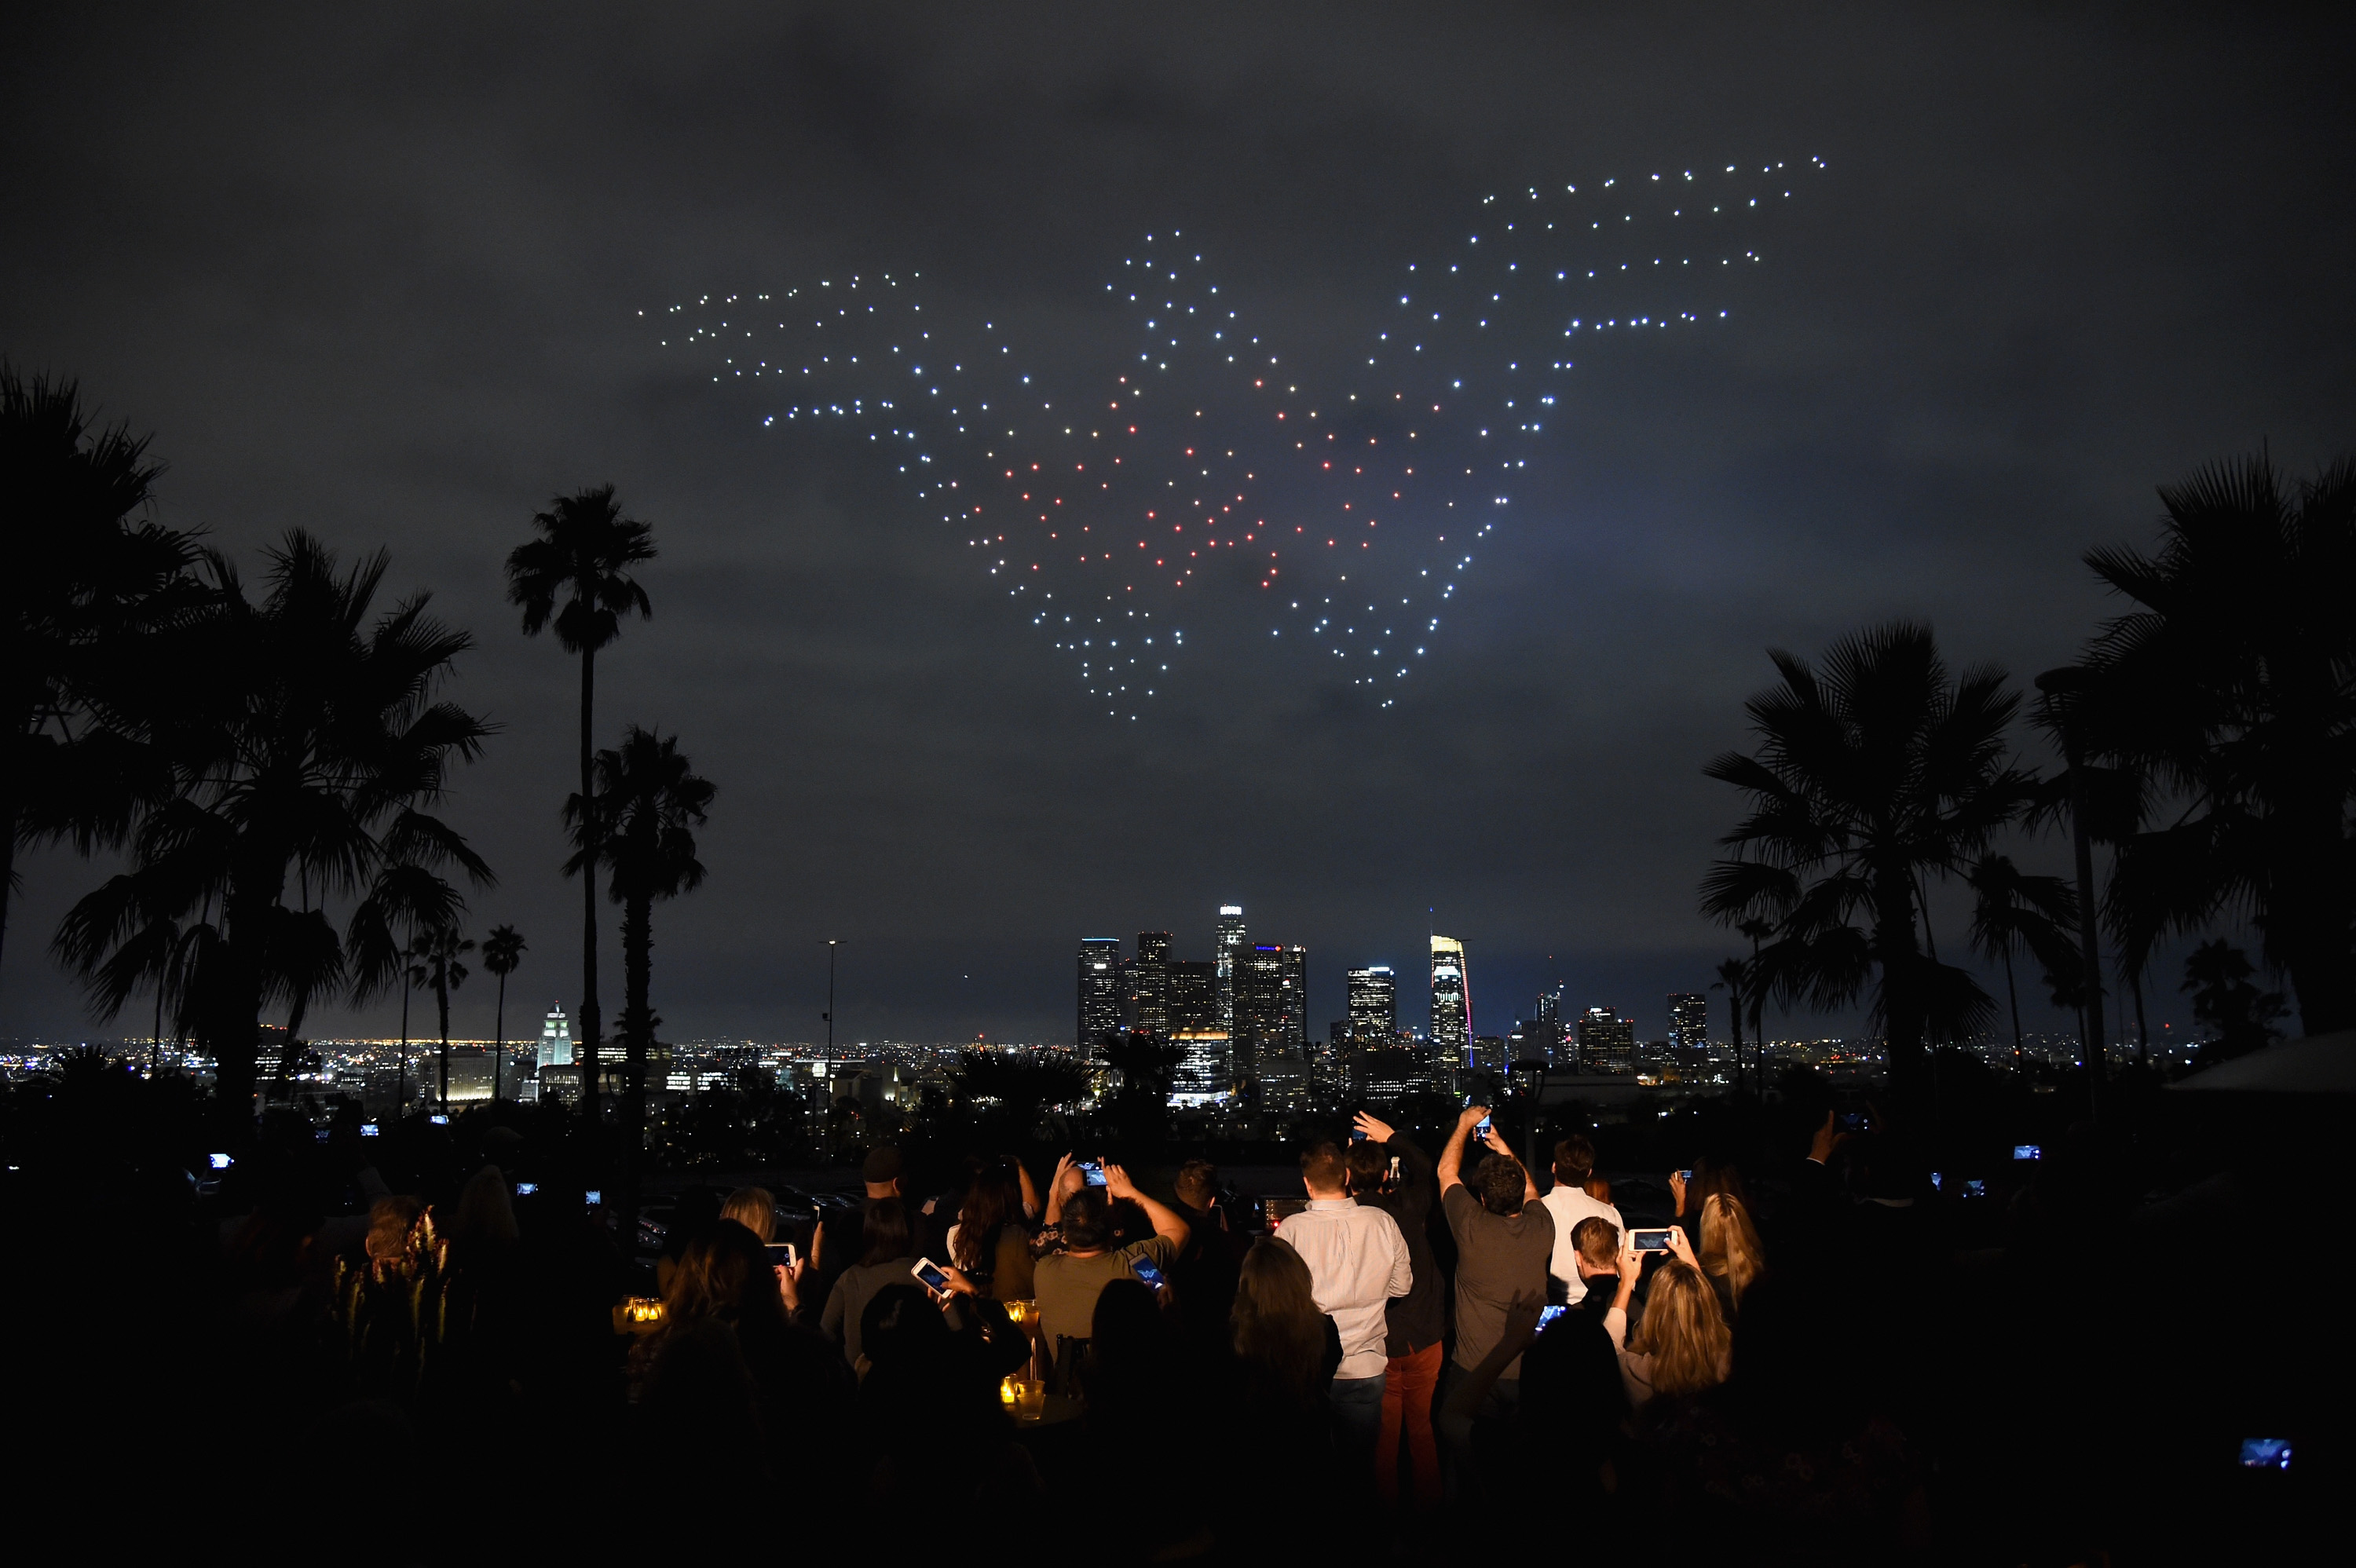 Intel's Wonder Woman drone light show powered by all-female crew